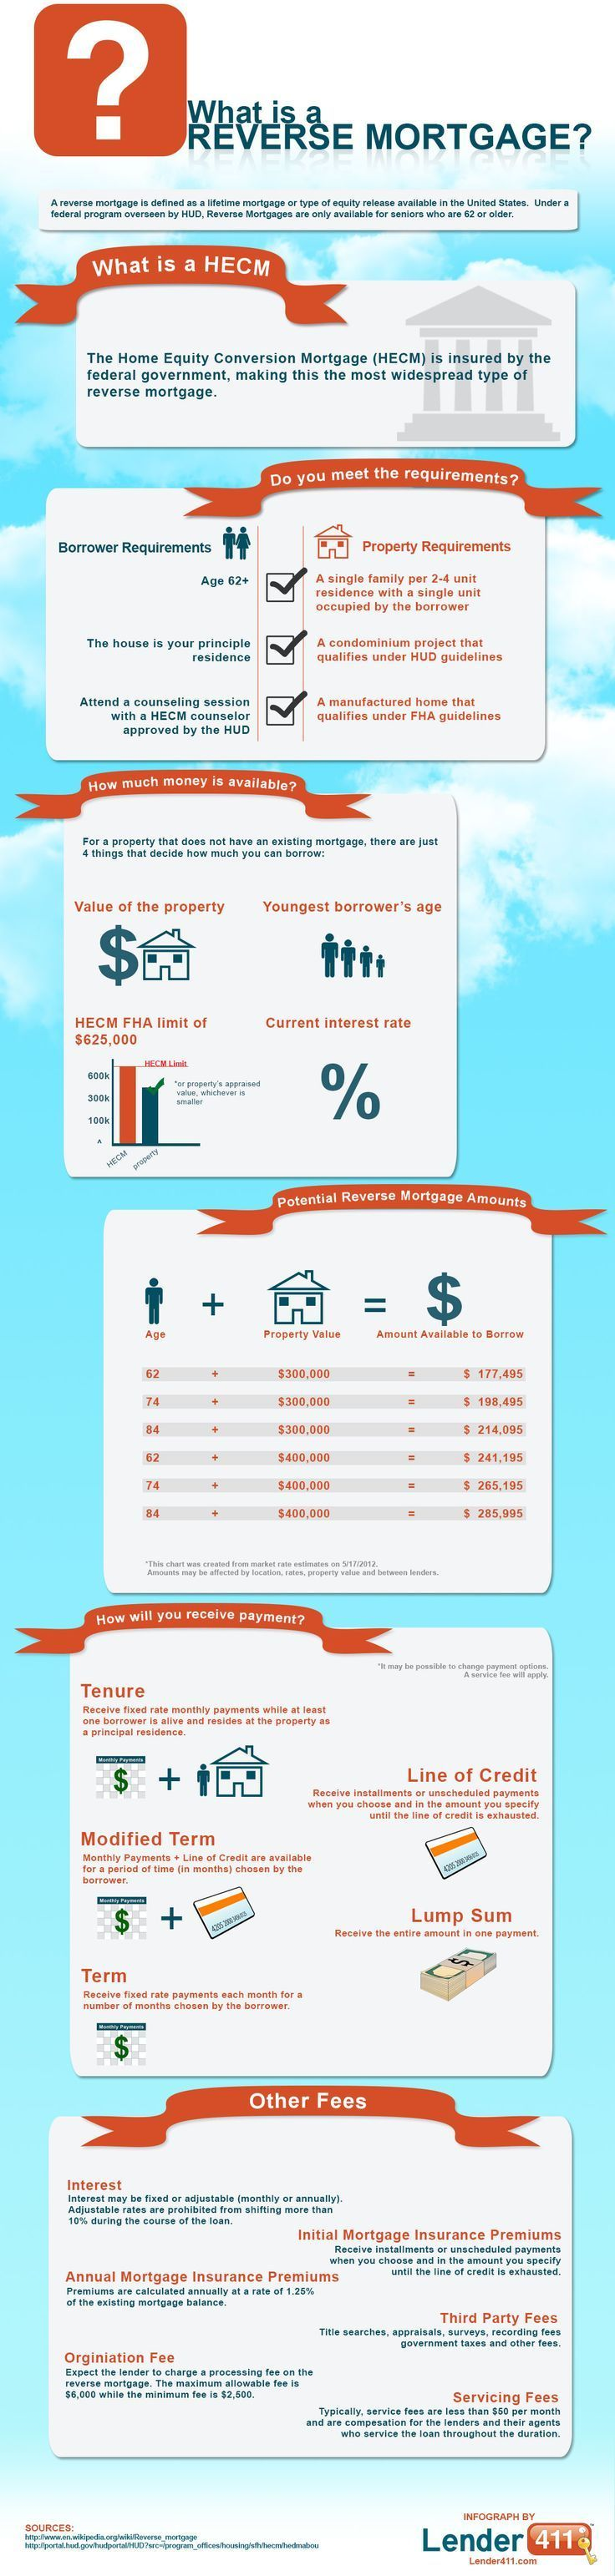 Mortgage Calculator Reverse Mortgages Are Great For People 62 Or